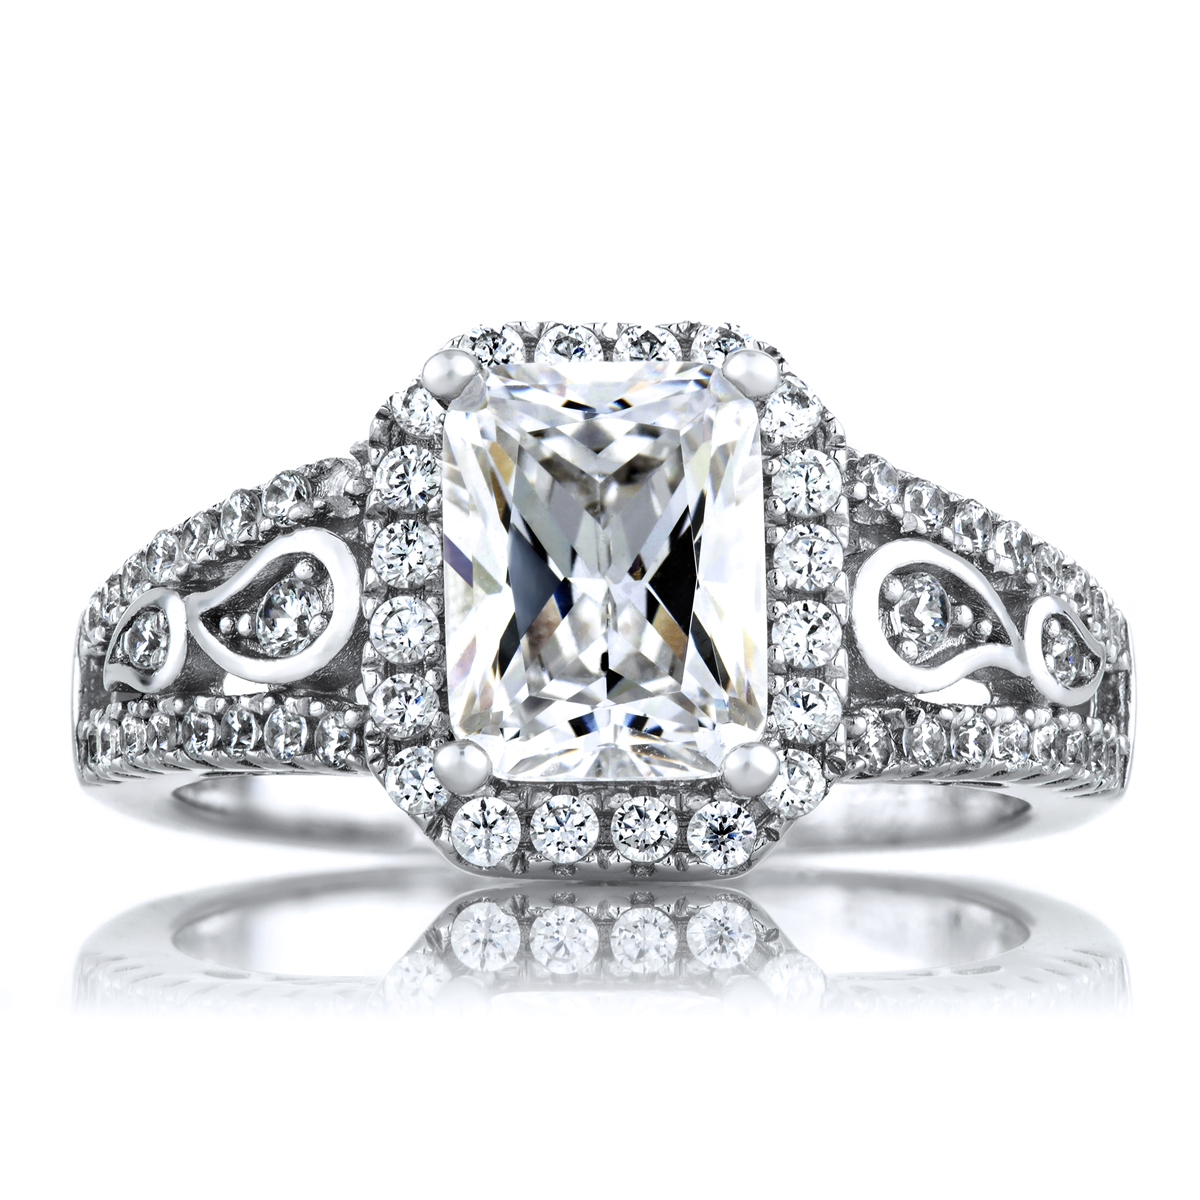 ... Emerald Cut CZ Engagement Ring. Roll Off Image to Close Zoom Window